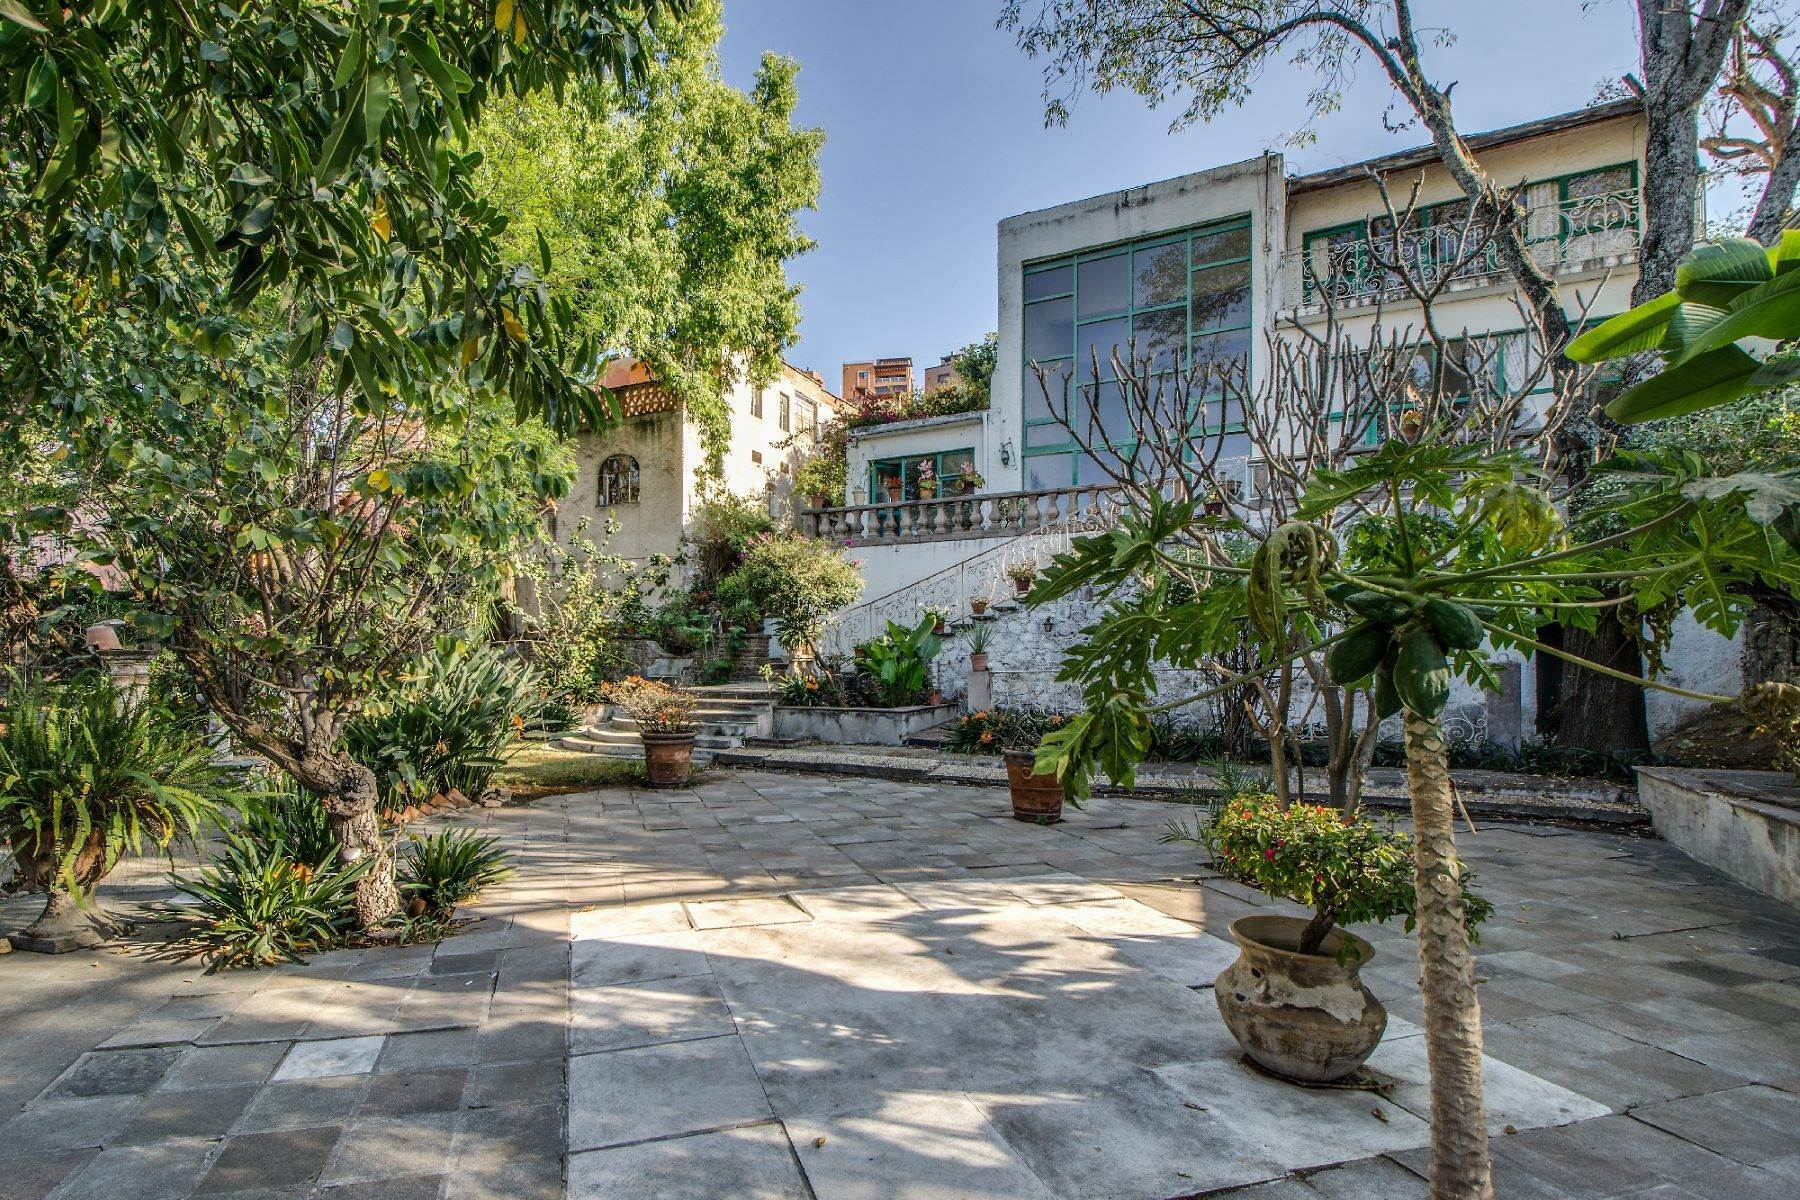 Single Family Homes for Sale at La Casa del Jardin Santo Domingo 12 San Miguel De Allende, Guanajuato 37700 Mexico